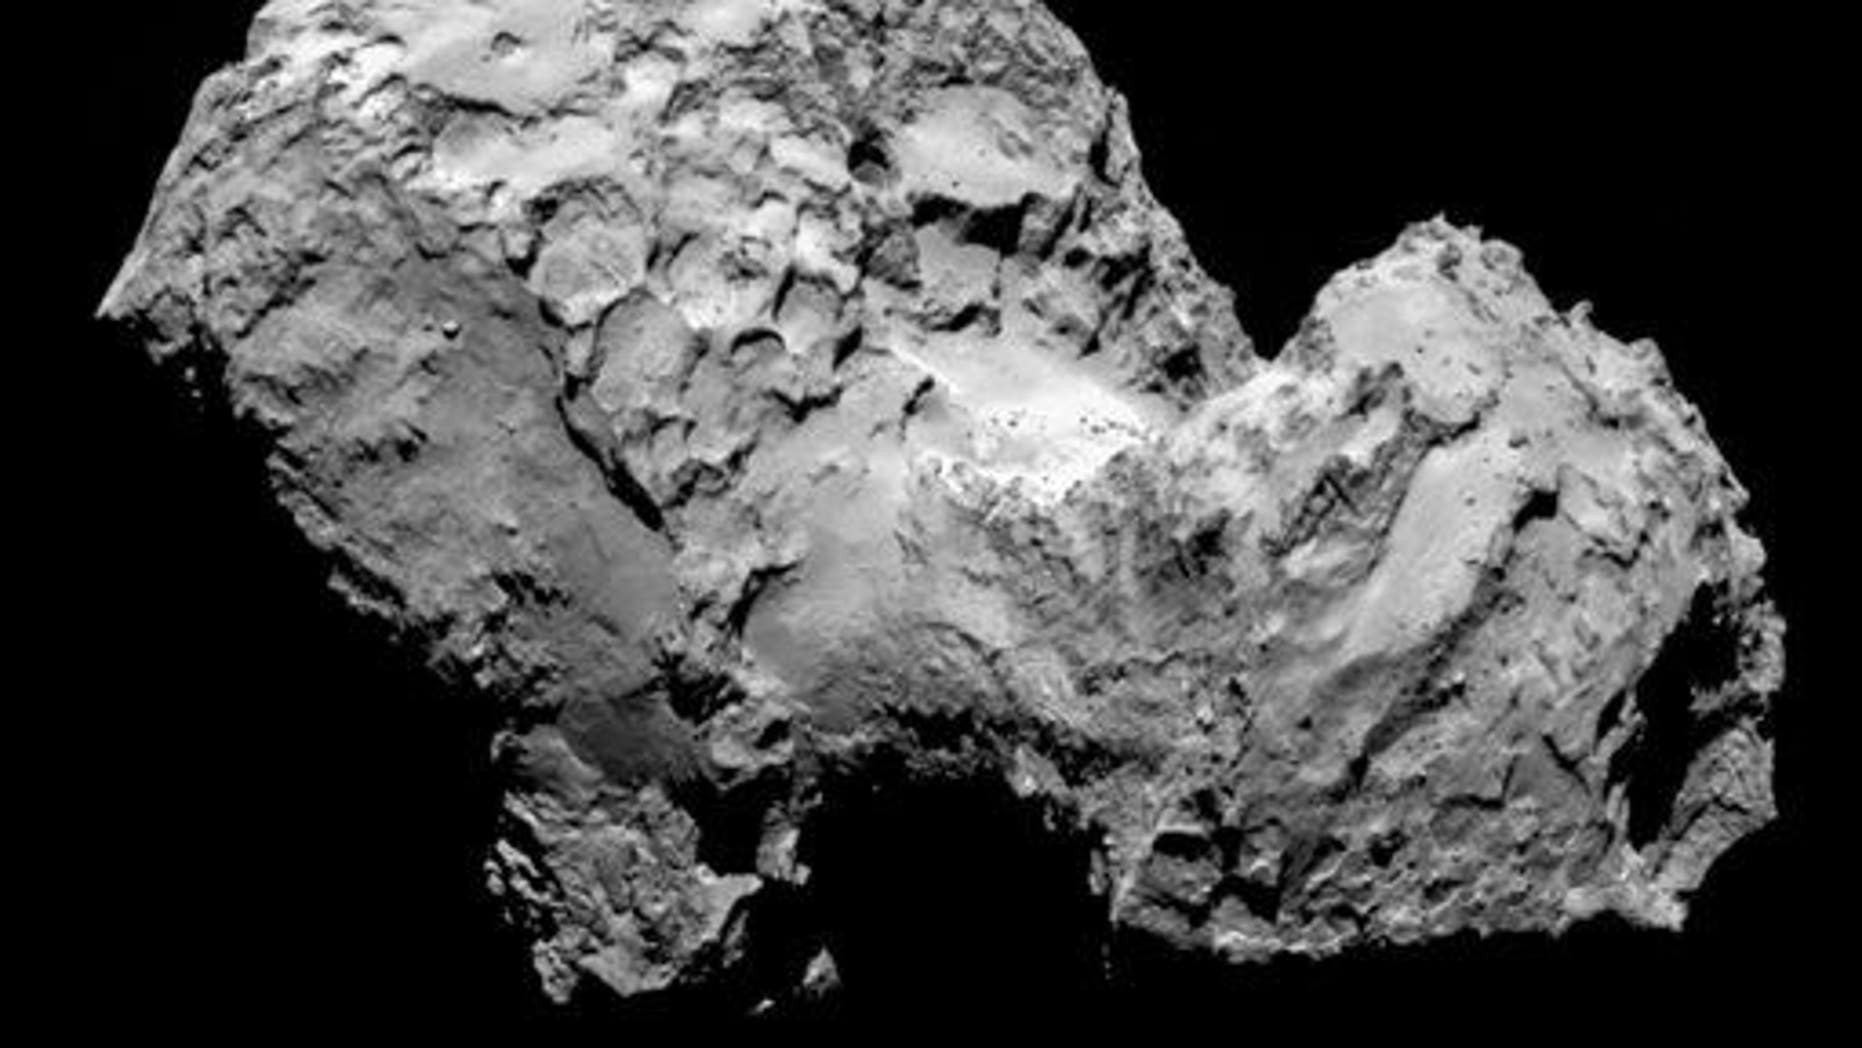 In this picture taken on Aug. 3, 2014, by Rosetta���s OSIRIS narrow-angle camera, Comet 67P/Churyumov-Gerasimenko is pictured.